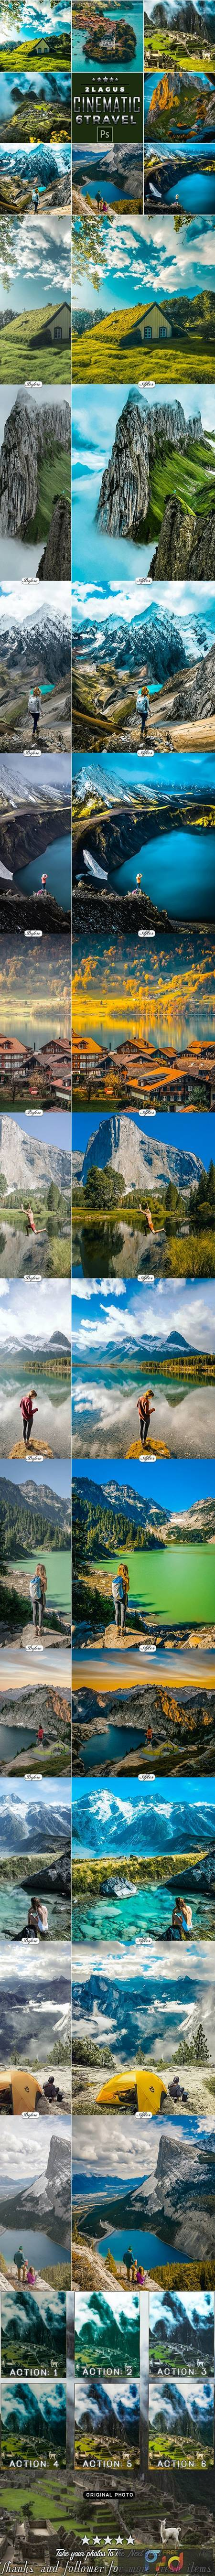 Cinematic-Landscap Travel Photoshop Actions 26196551 1